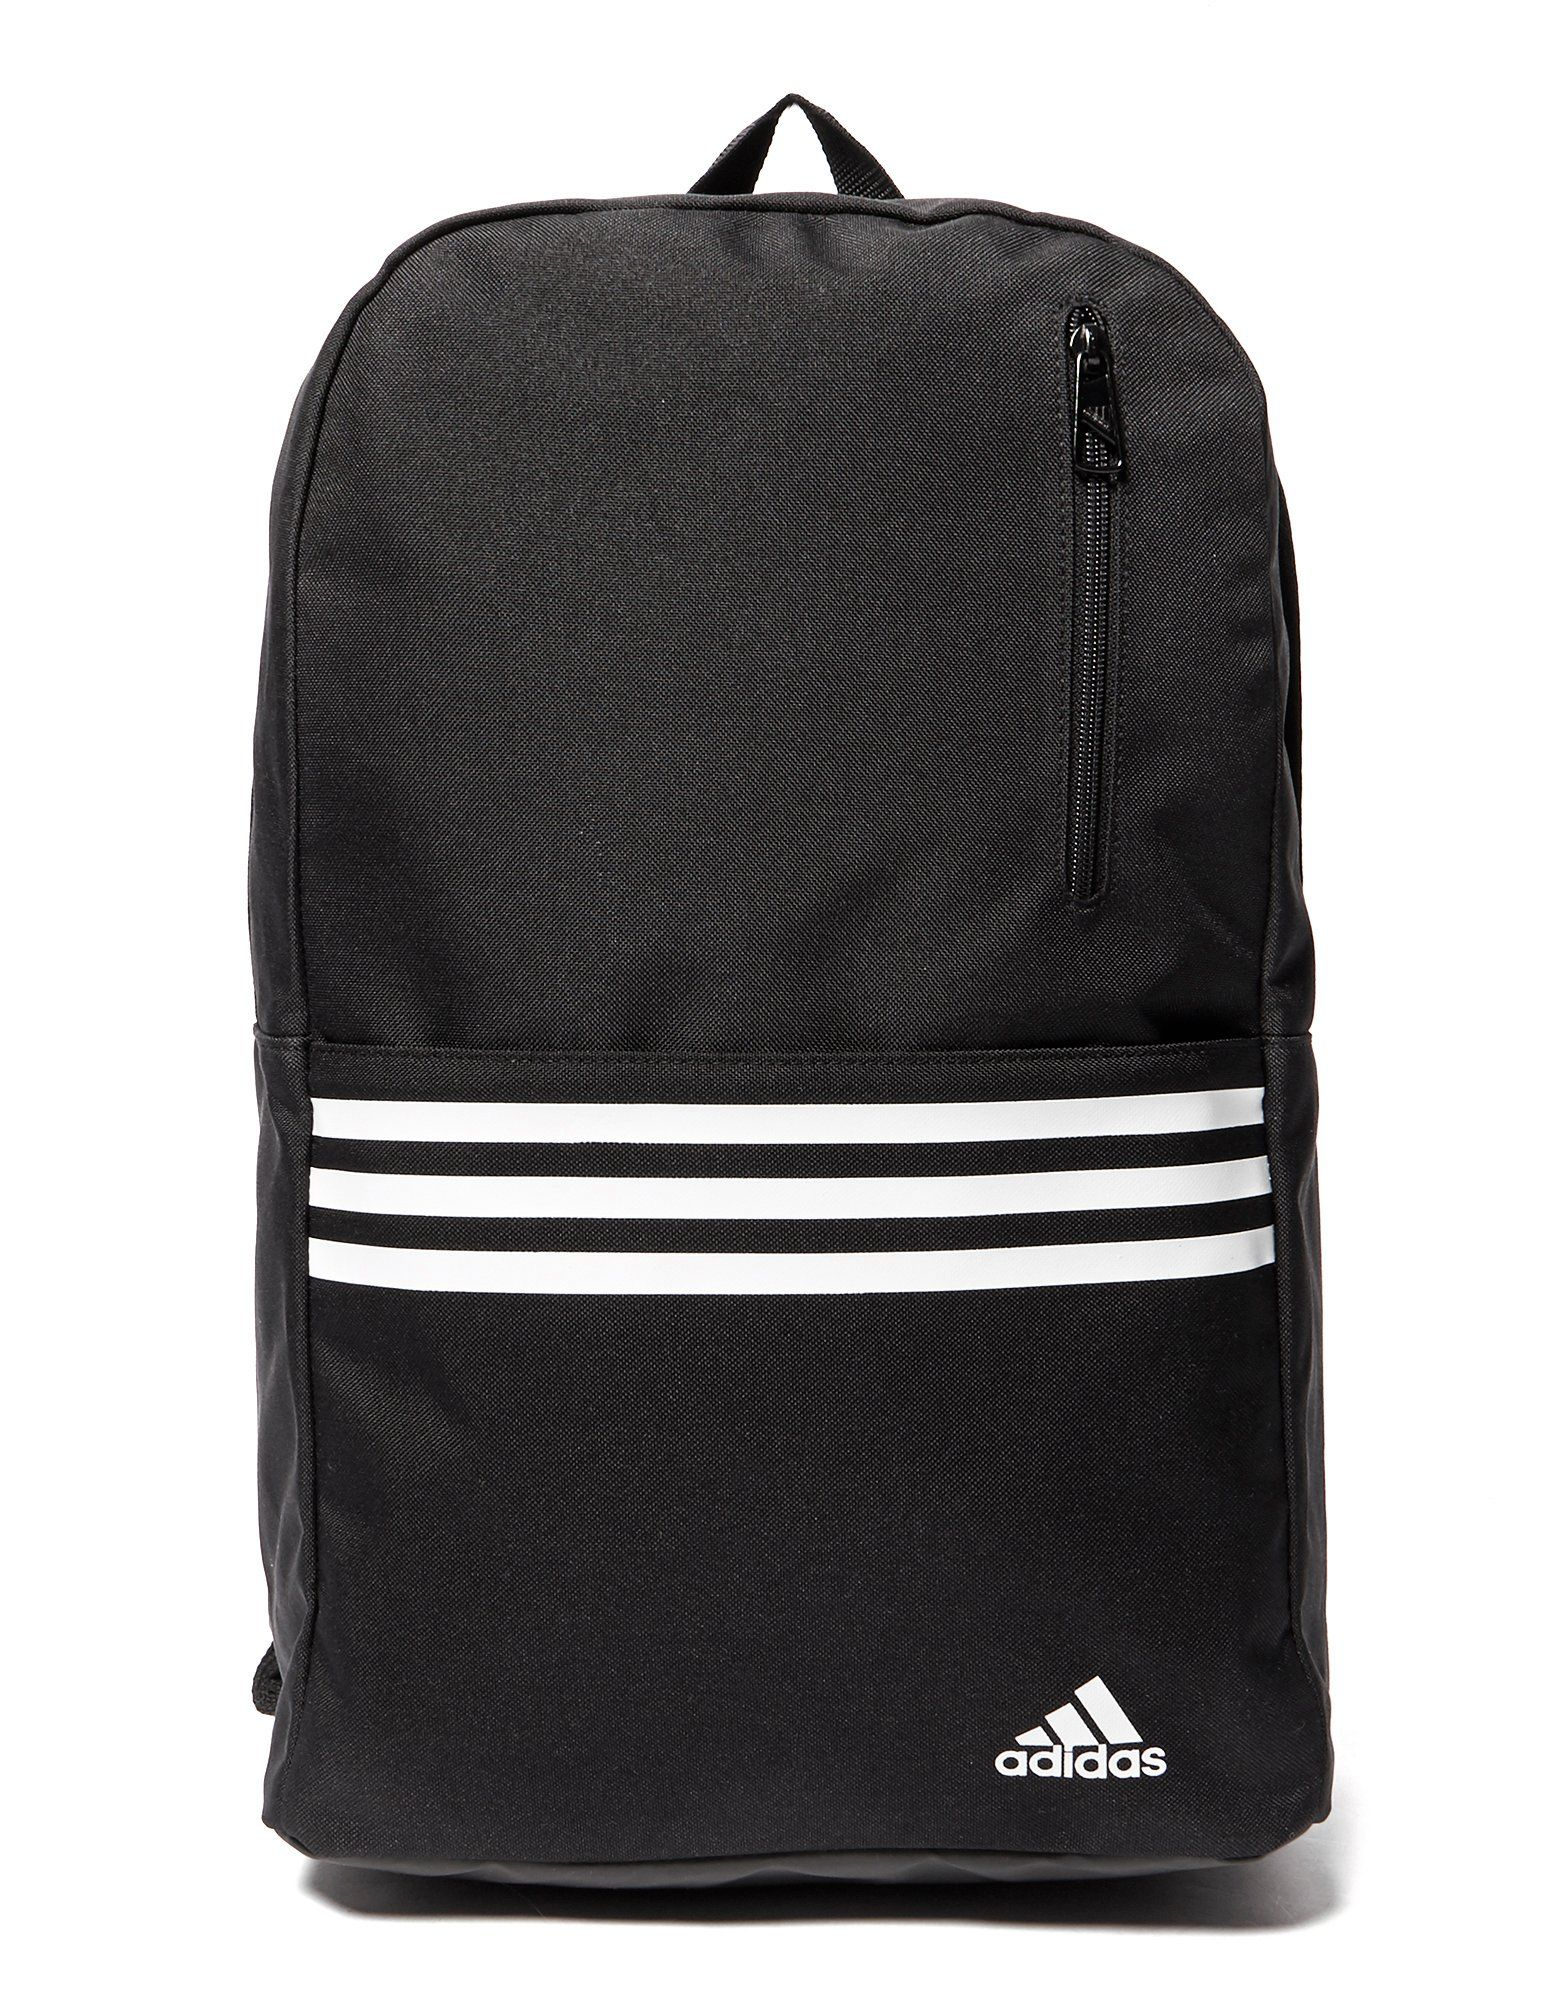 adidas sale bags